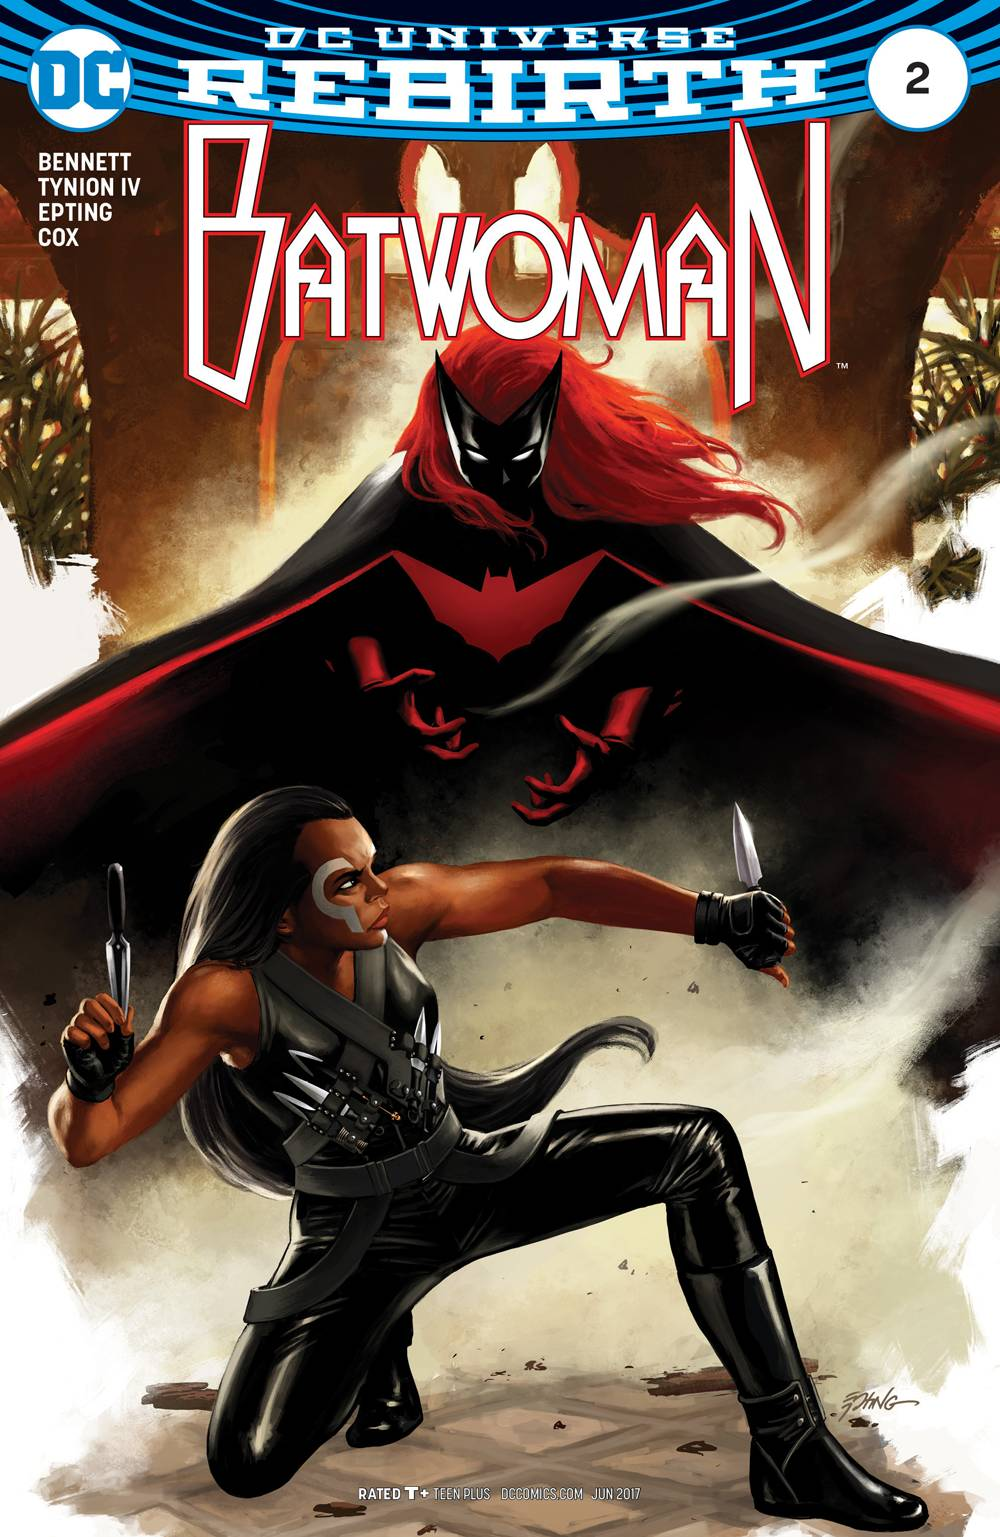 BATWOMAN #2 (NOTE PRICE)